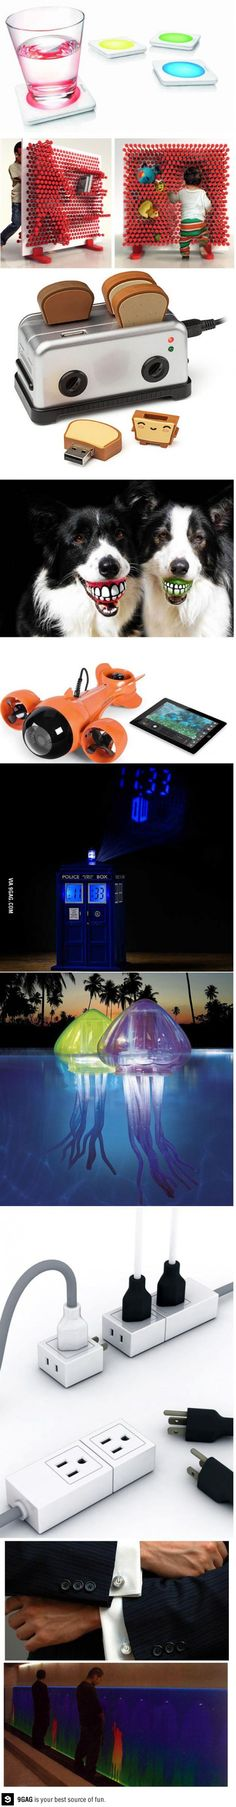 they are all cool but i love that TARDIS!!